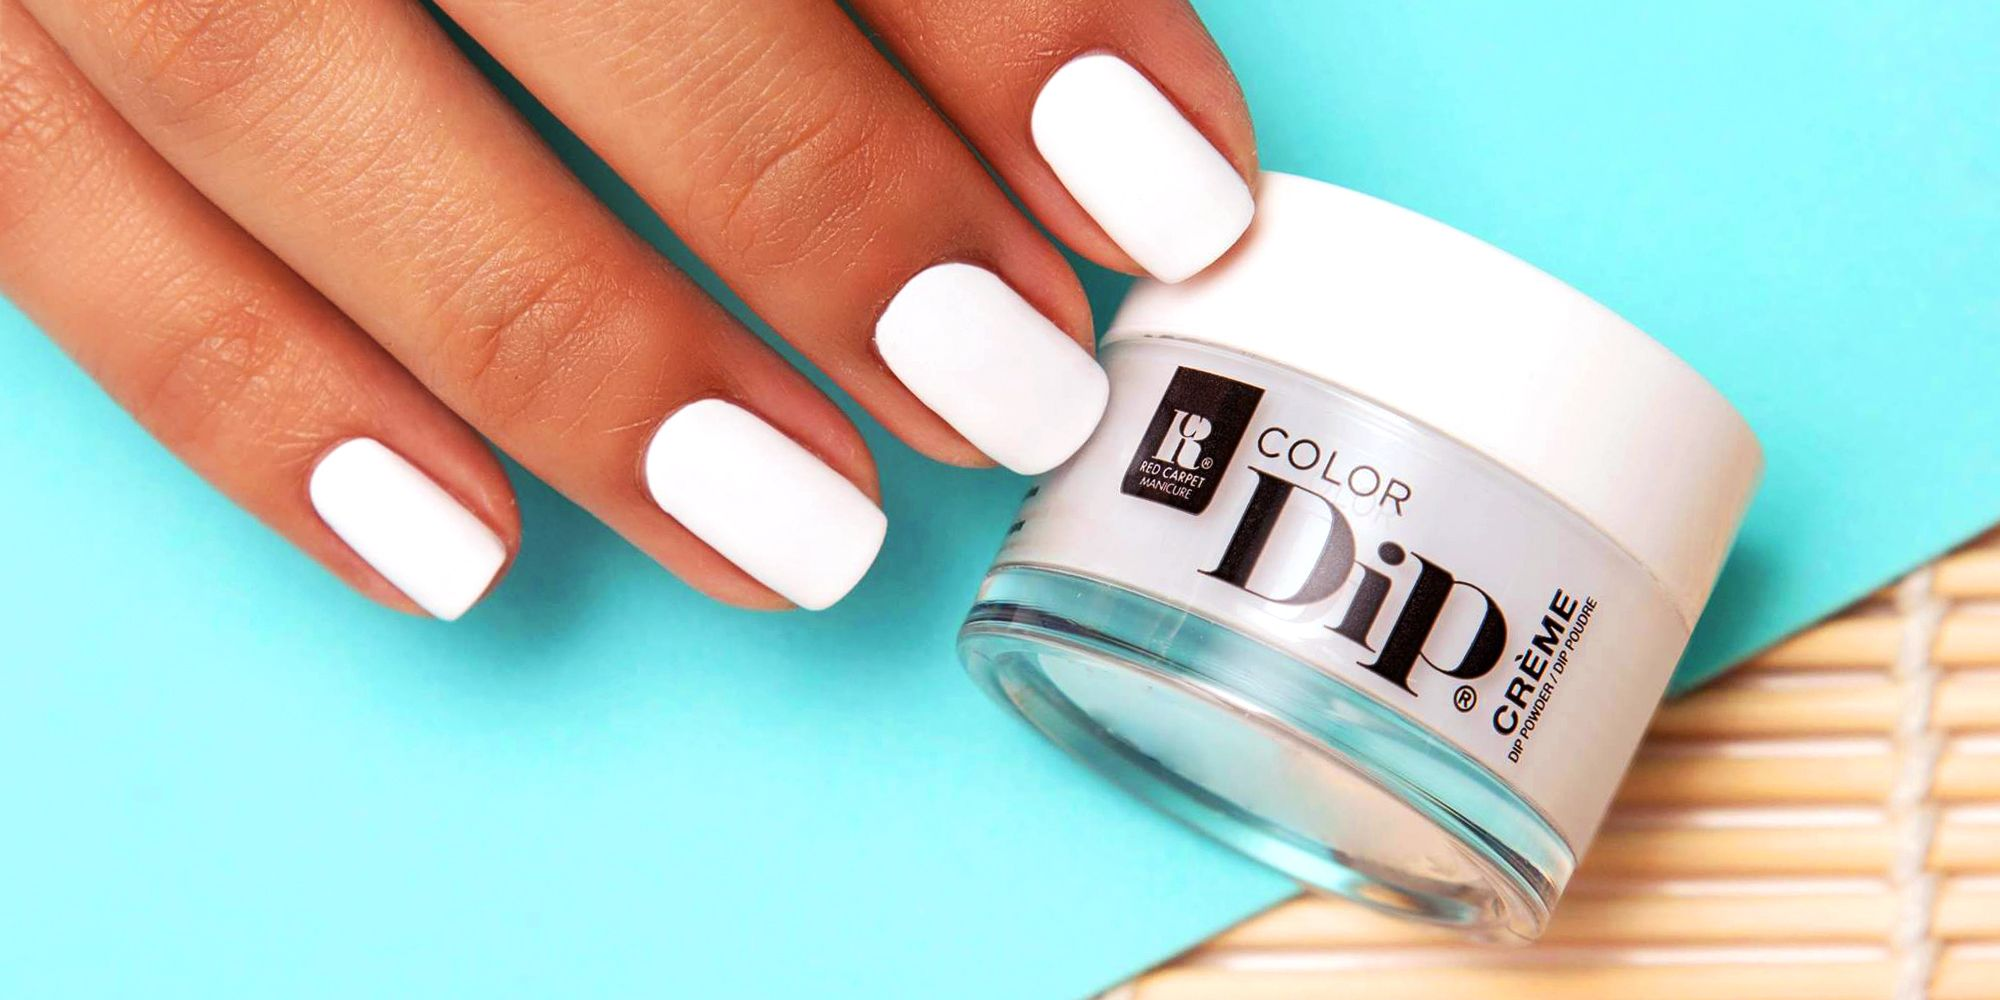 11 Best Dip Powder Nail Kits 2019 - How to Give Yourself a Dip ...